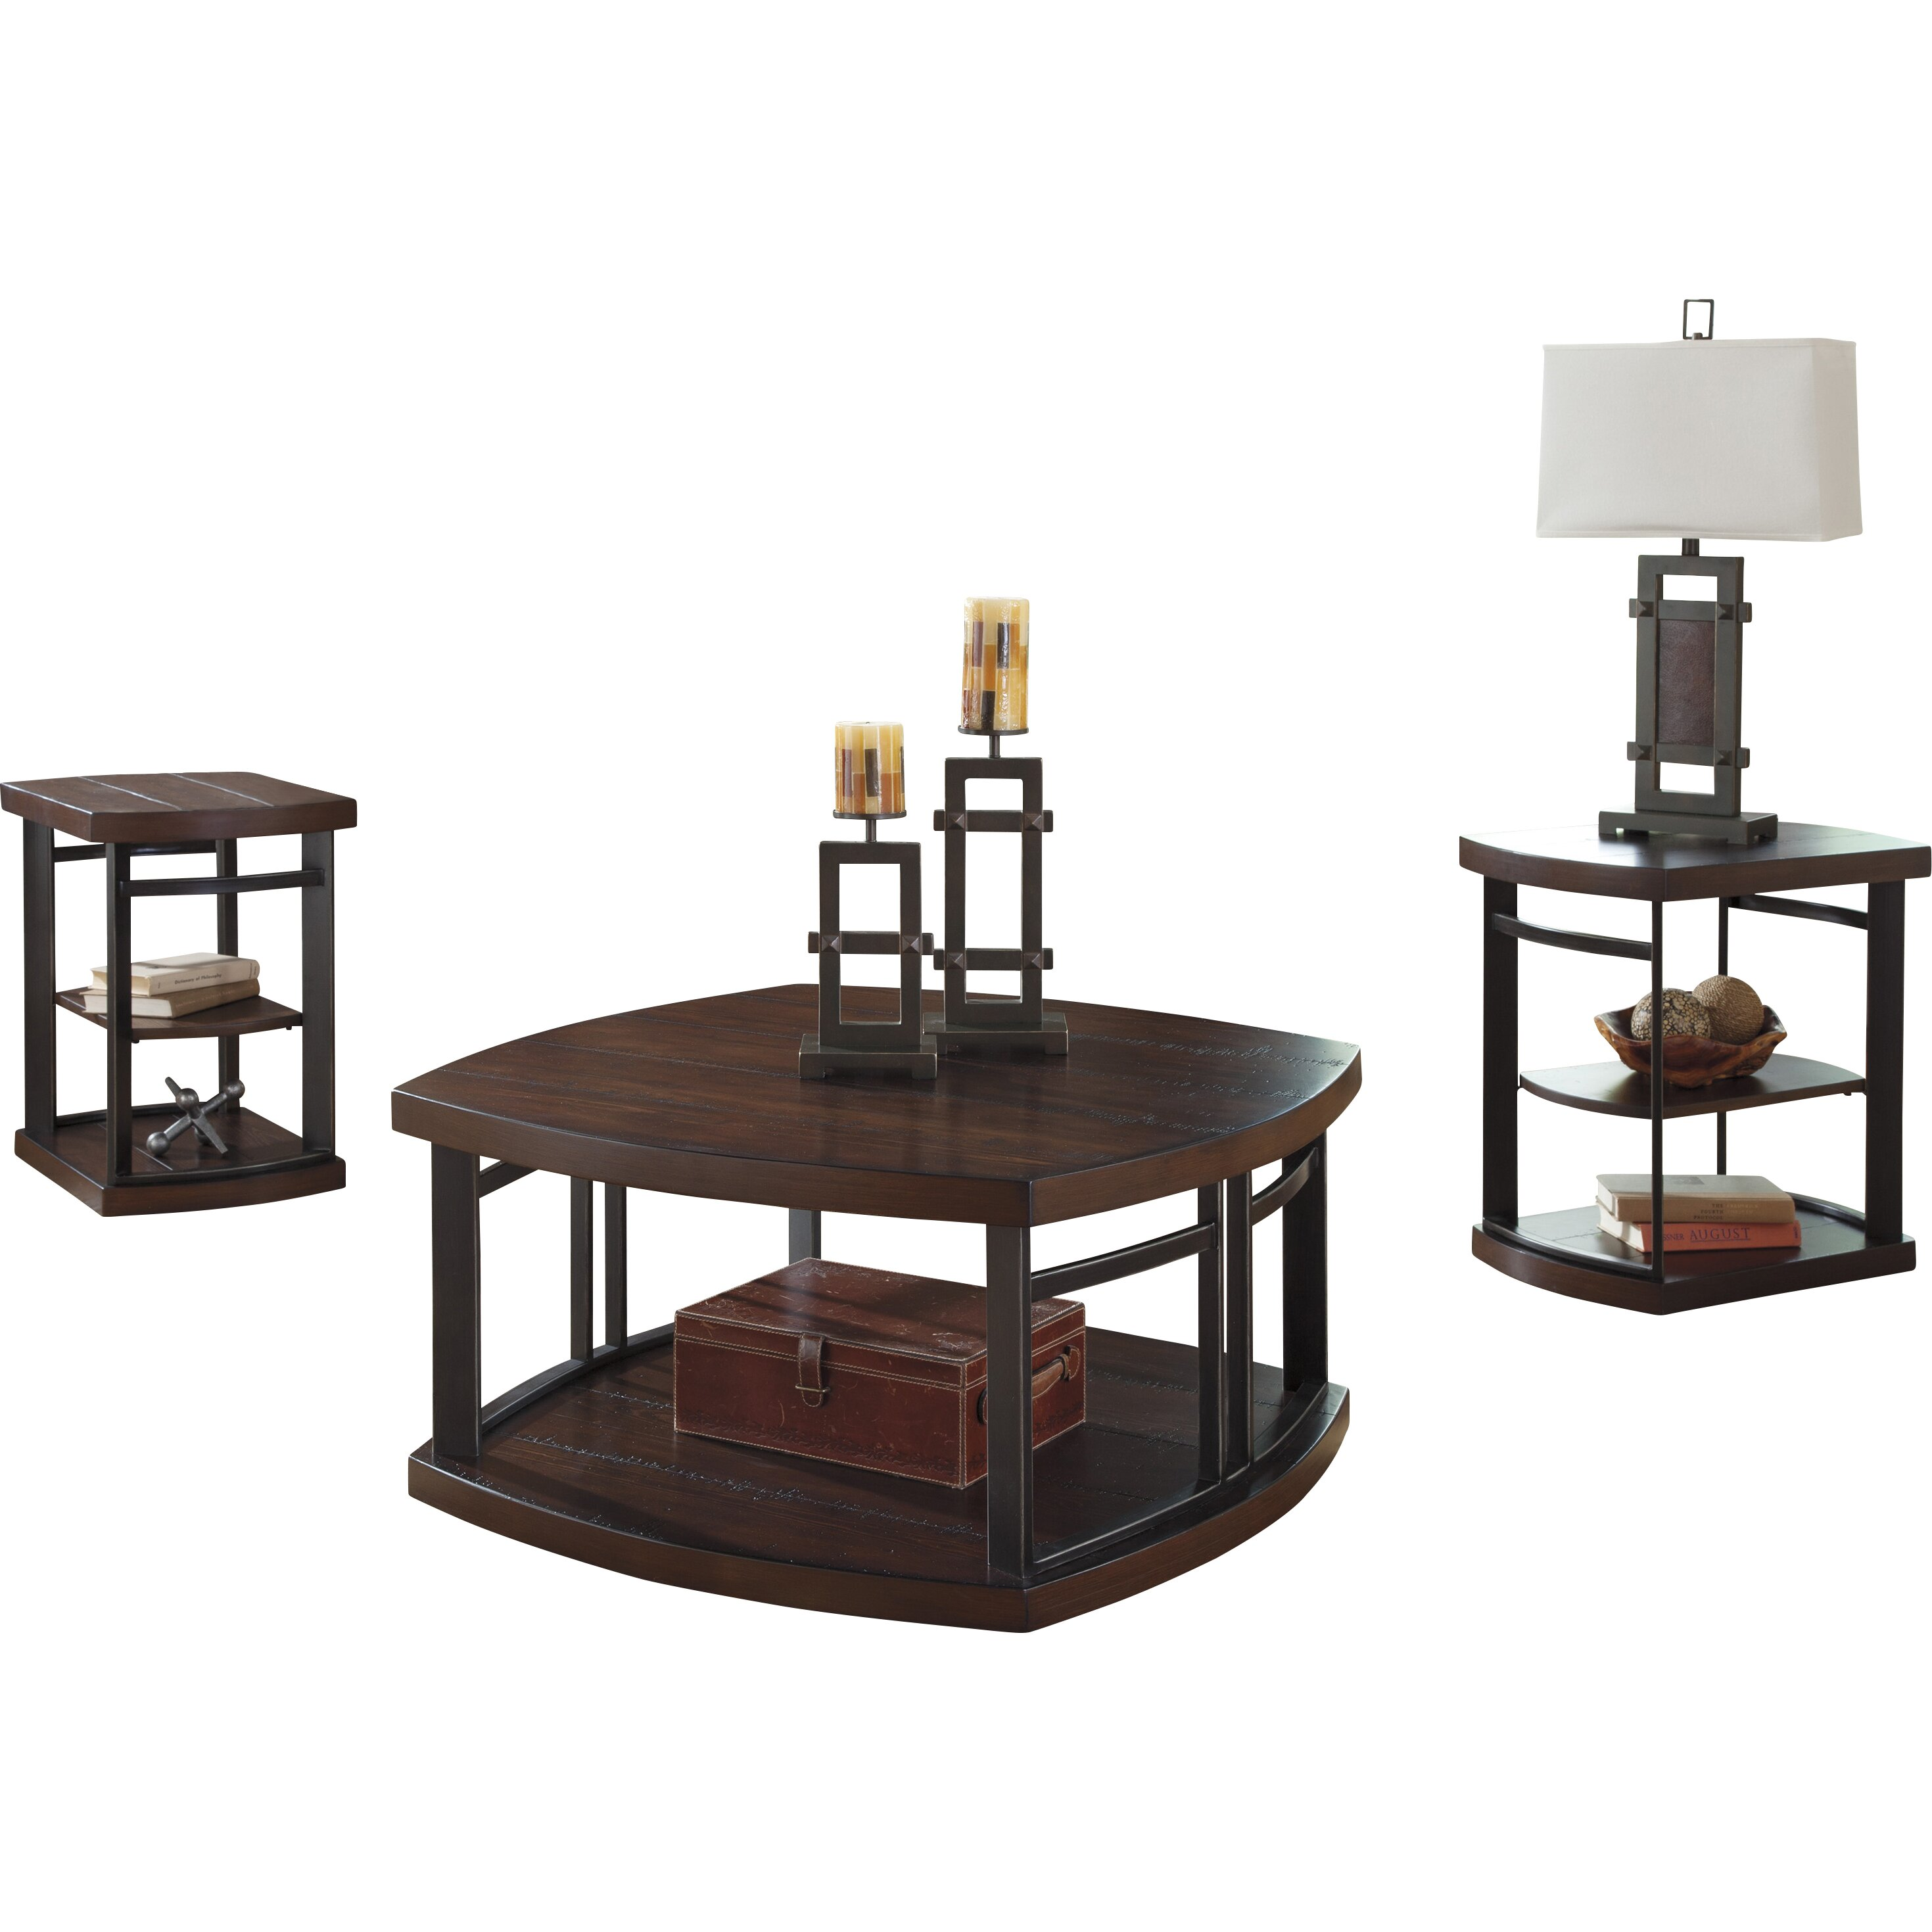 Brayden Studio Dube 3 Piece Coffee Table Set & Reviews